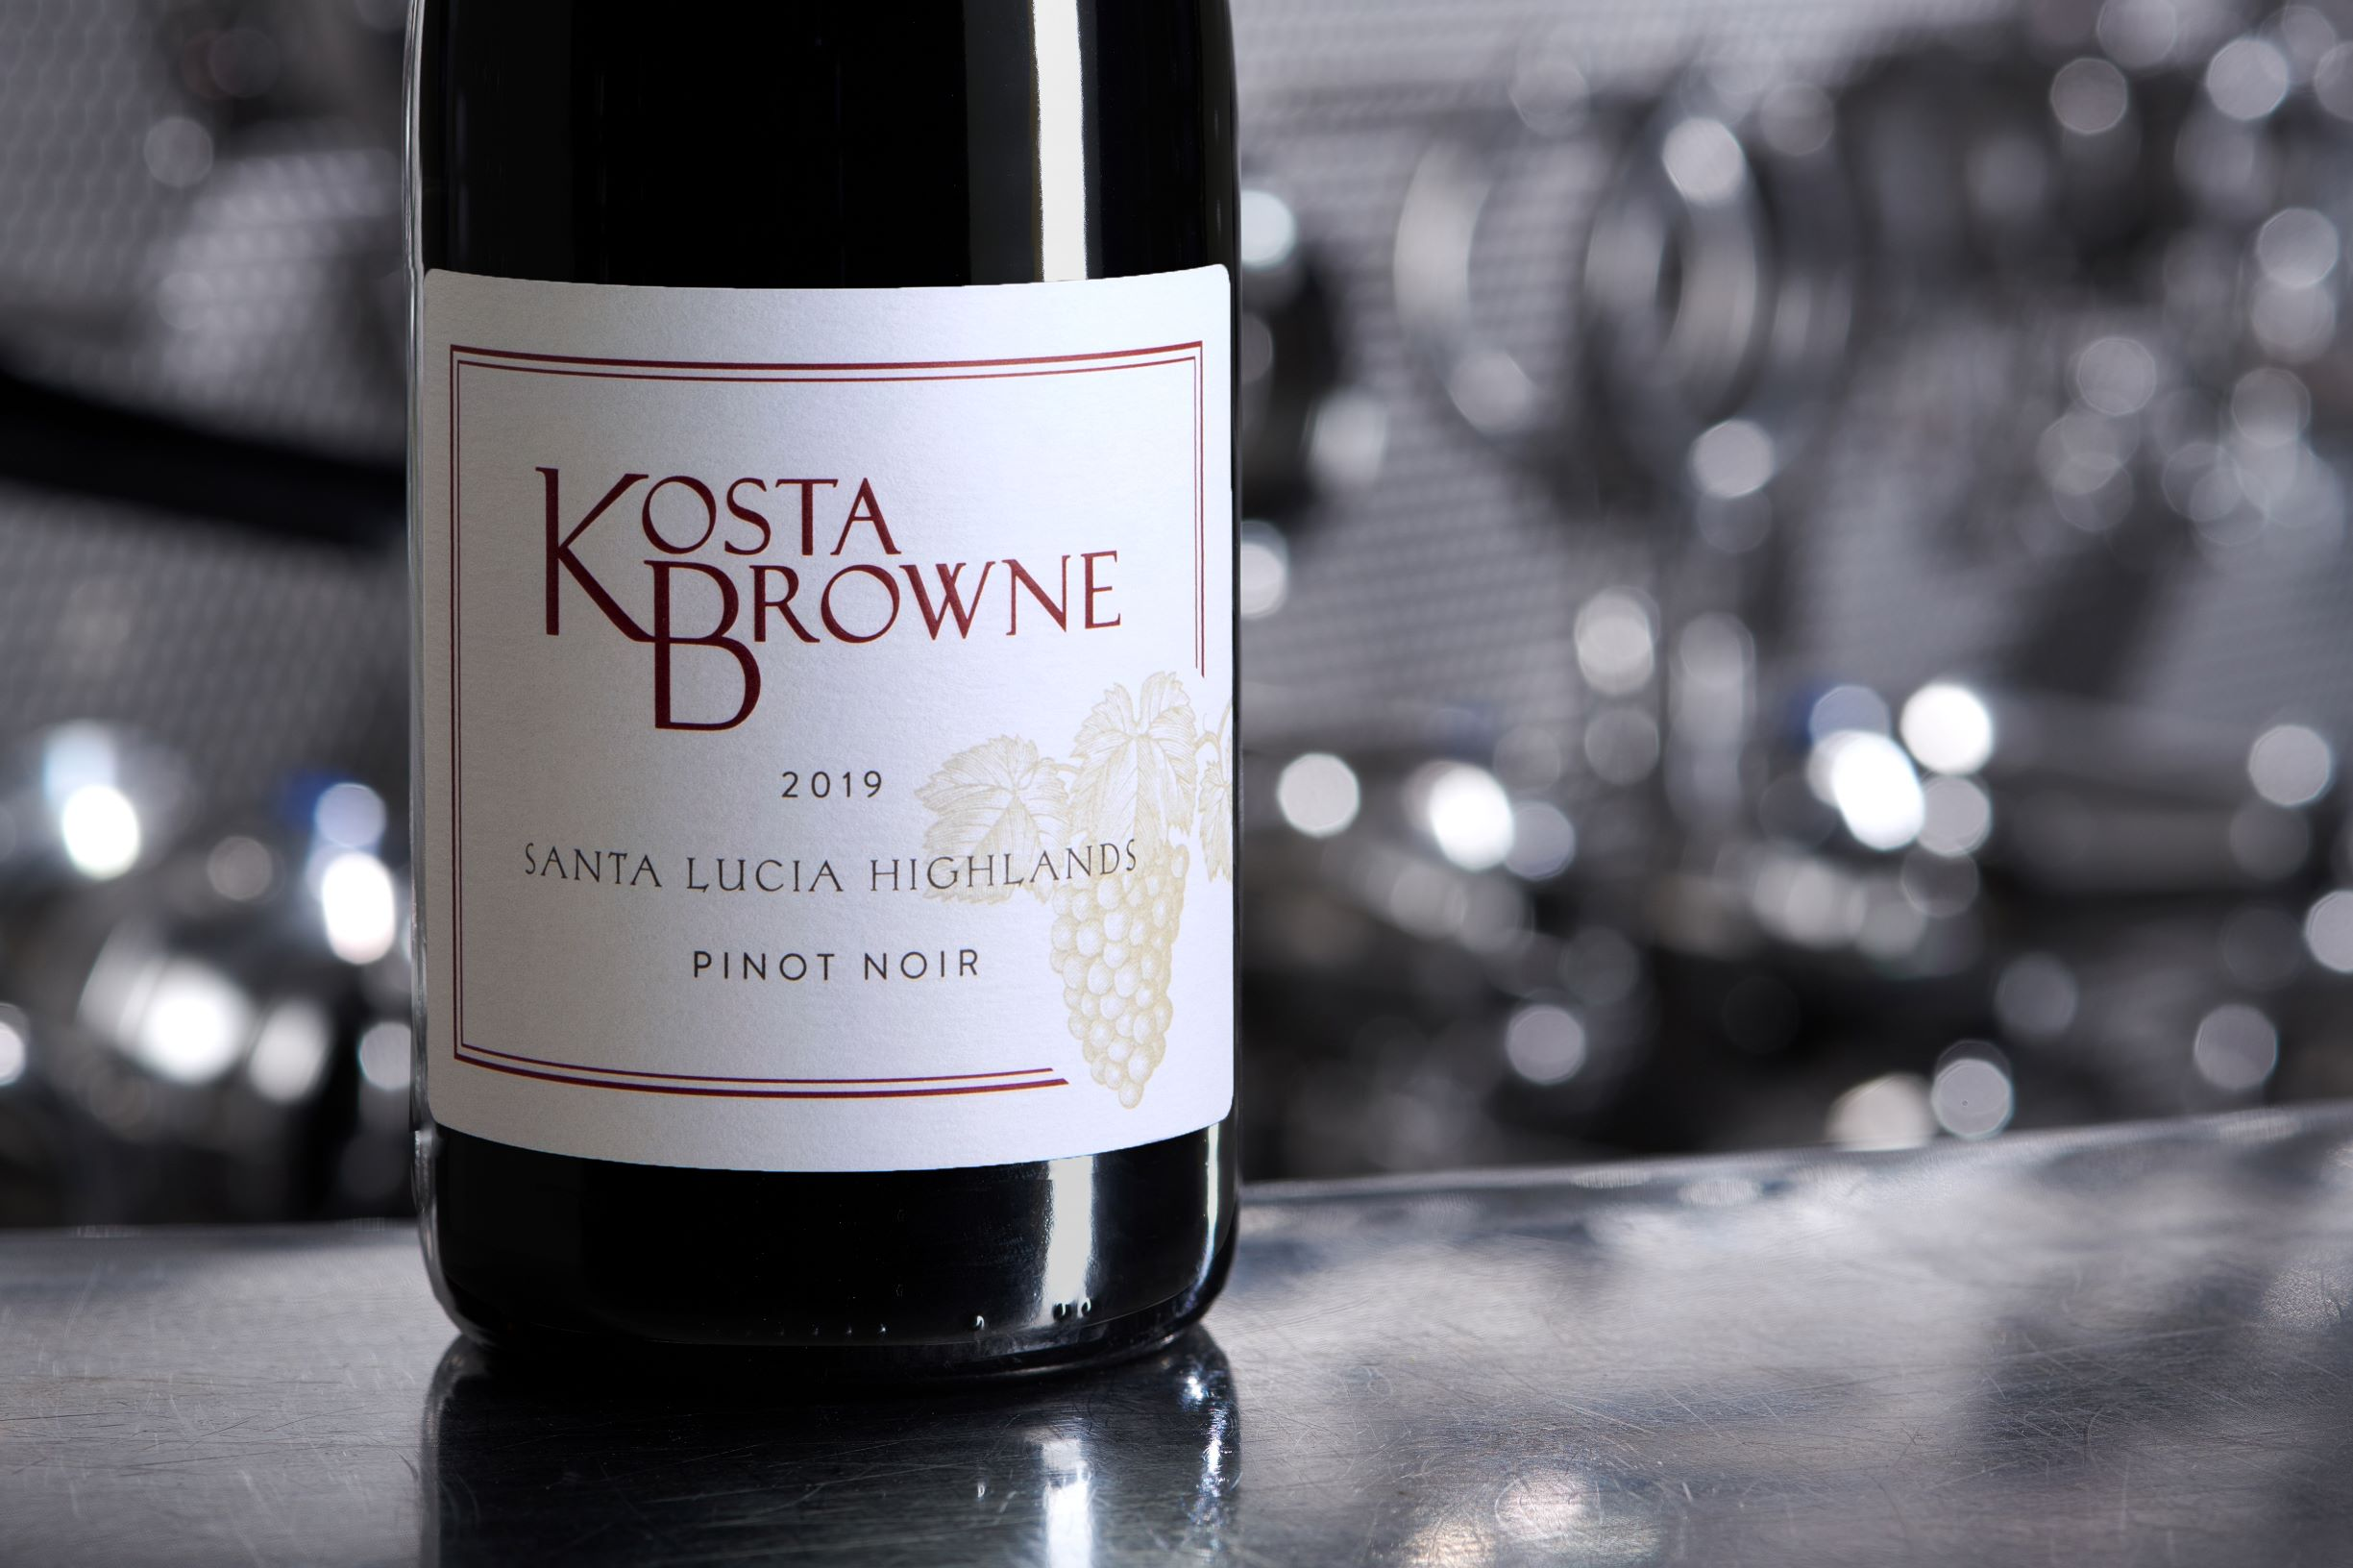 2019 Santa Lucia Highlands Pinot Noir - Kosta Browne Winery